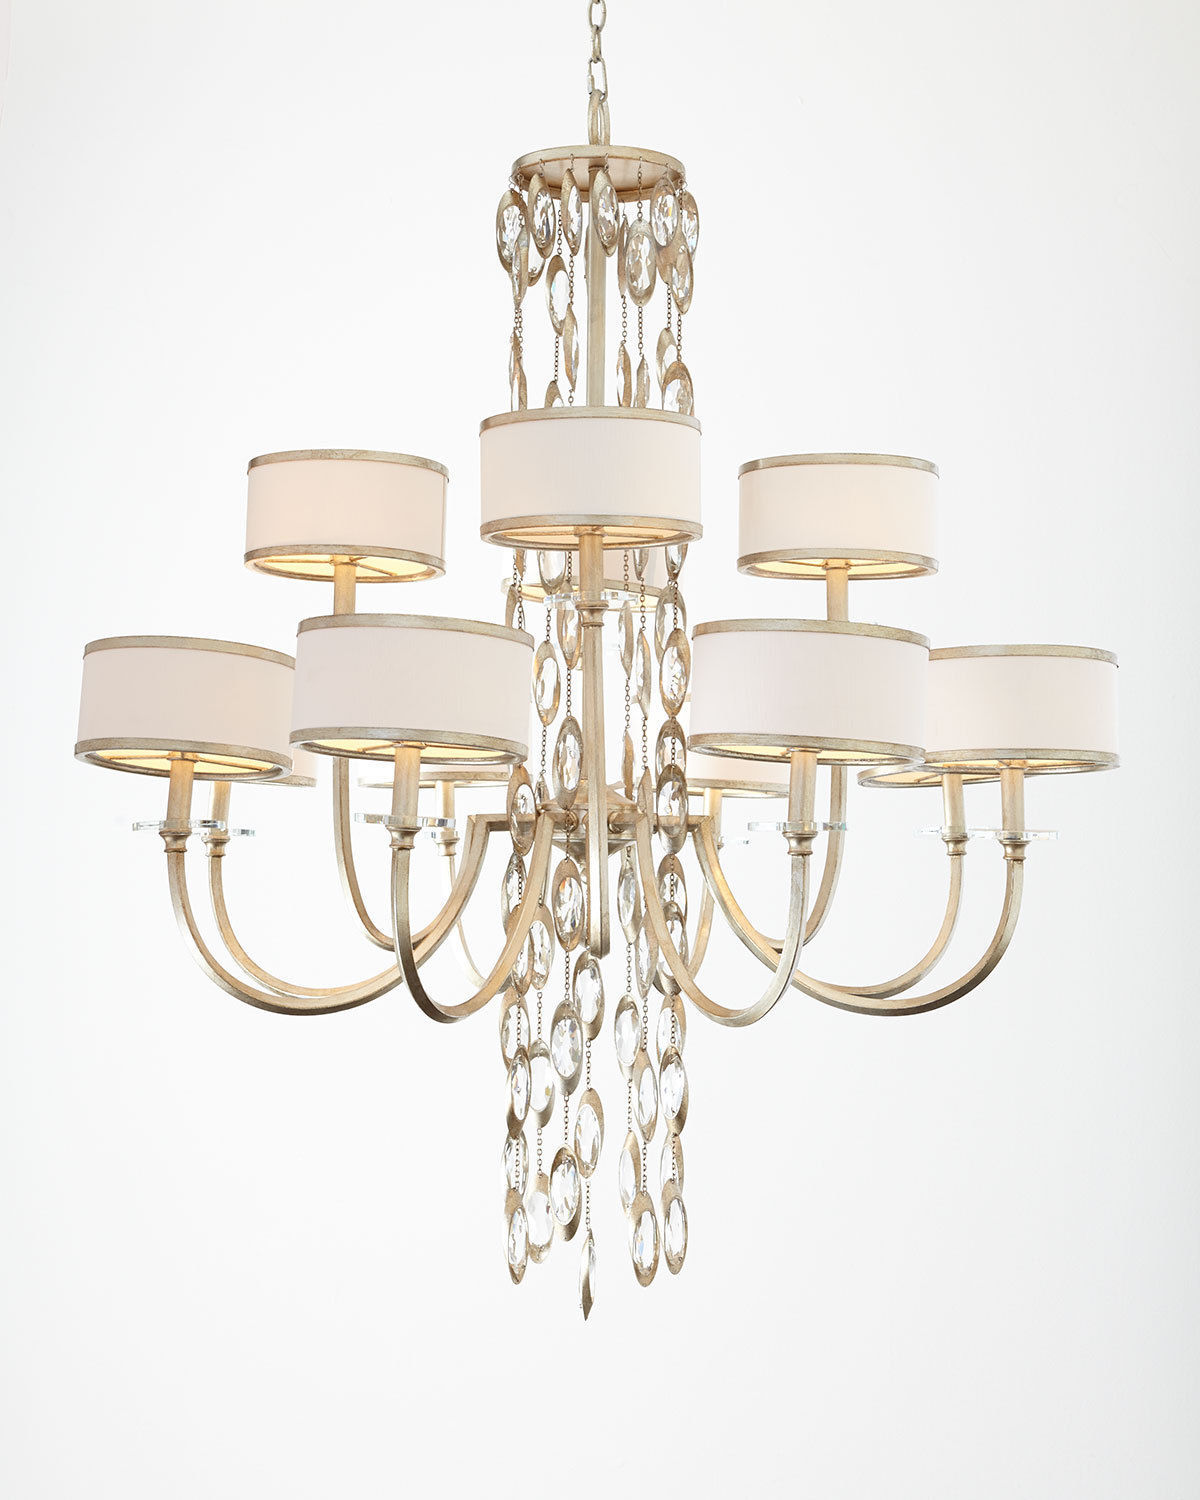 horchow lighting chandeliers. Purehome Chandelier 206 Listings Horchow Lighting Chandeliers